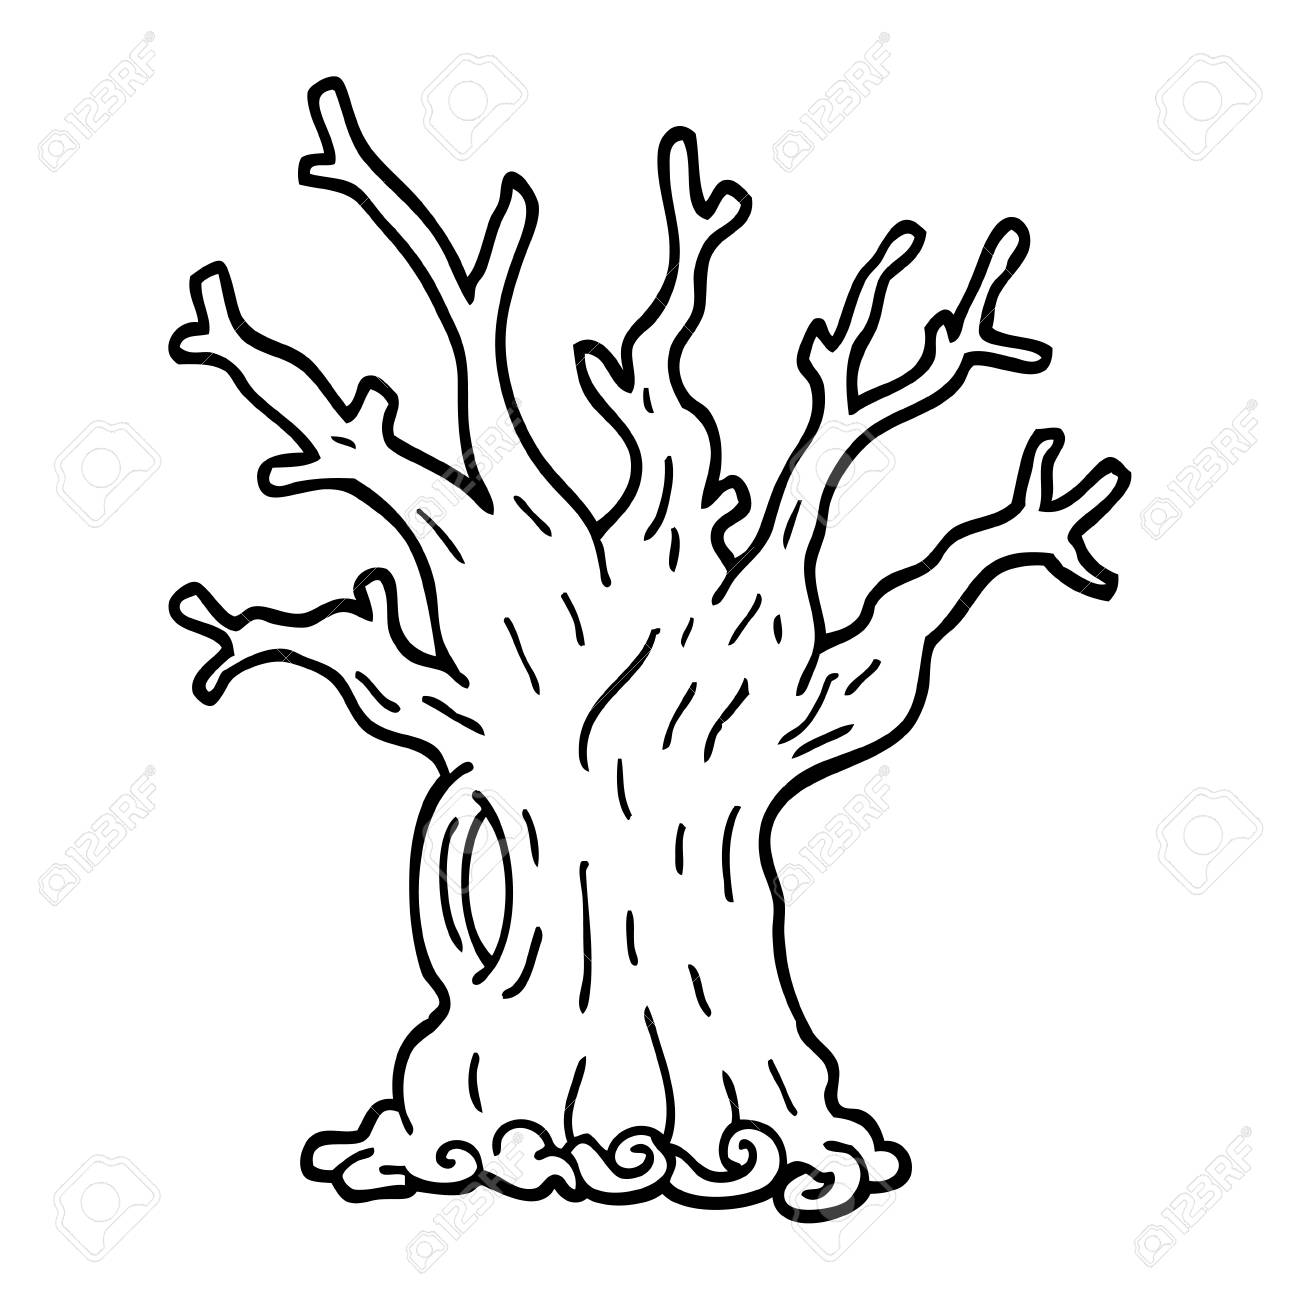 Black And White Cartoon Tree Royalty Free Cliparts, Vectors, And ...